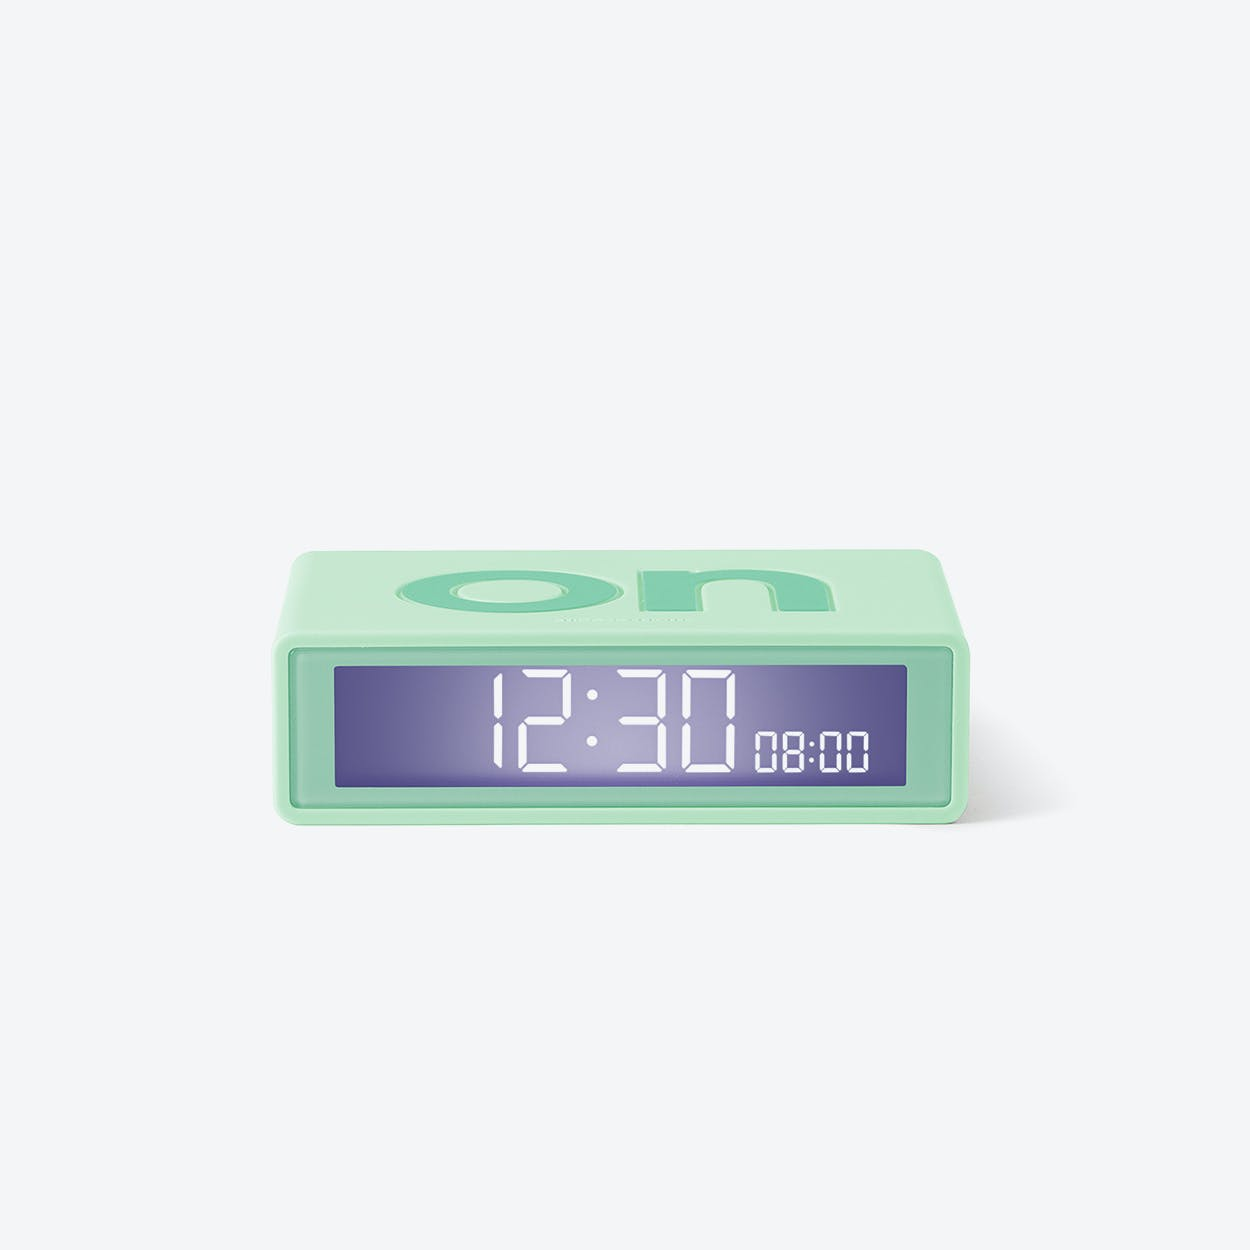 LCD Alarm Clock - Flip Travel Clock Light Green